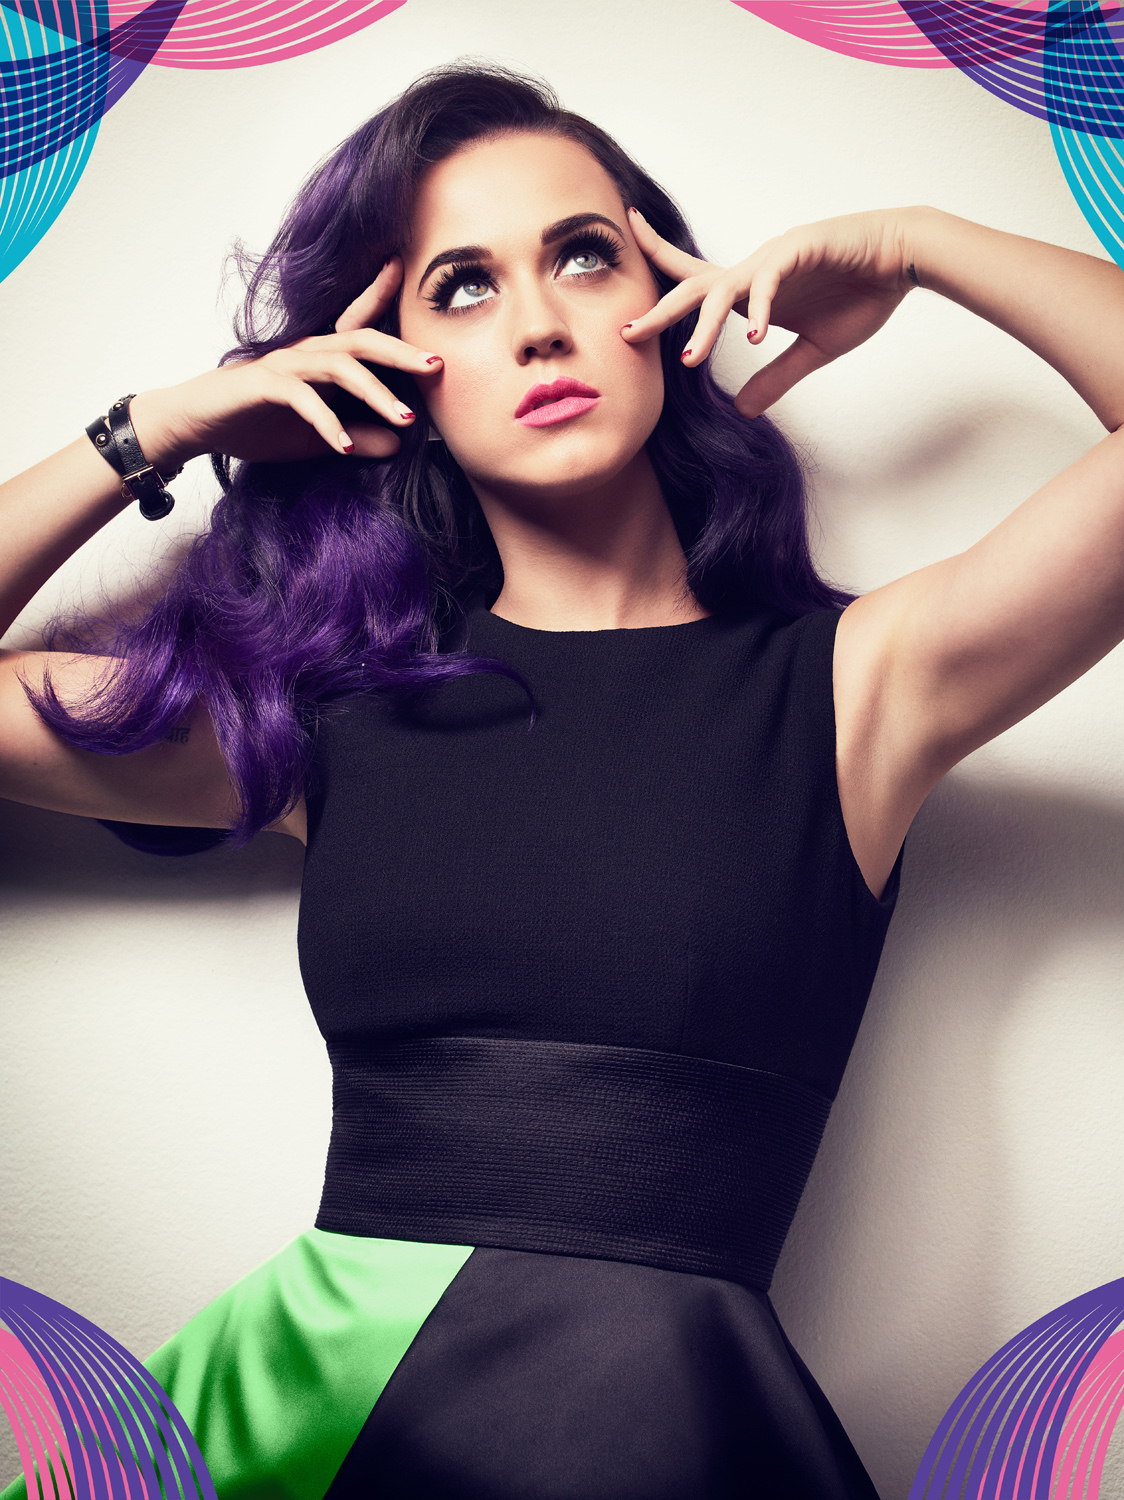 Katy Perry: Katy Perry Facts And Beautiful Photos 2013